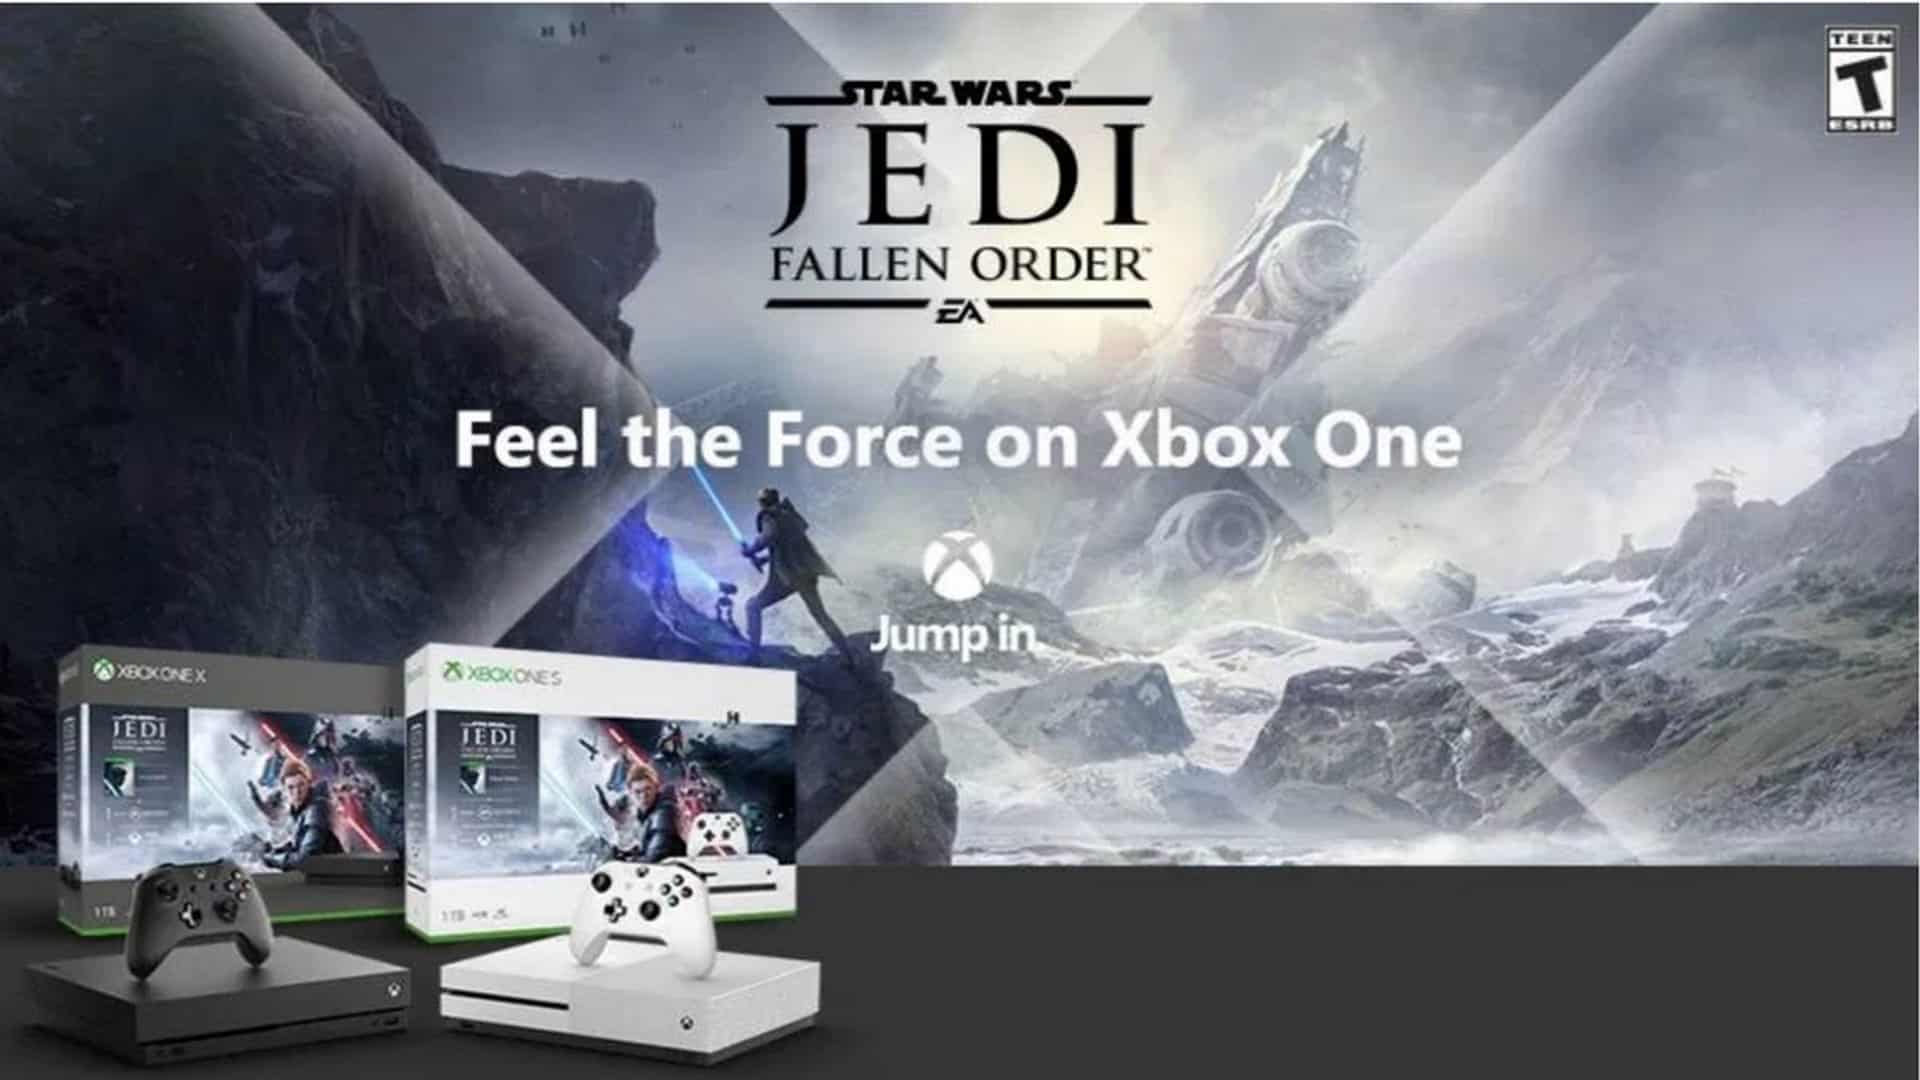 Become a Jedi With Two New Star Wars Jedi: Fallen Order Bundles